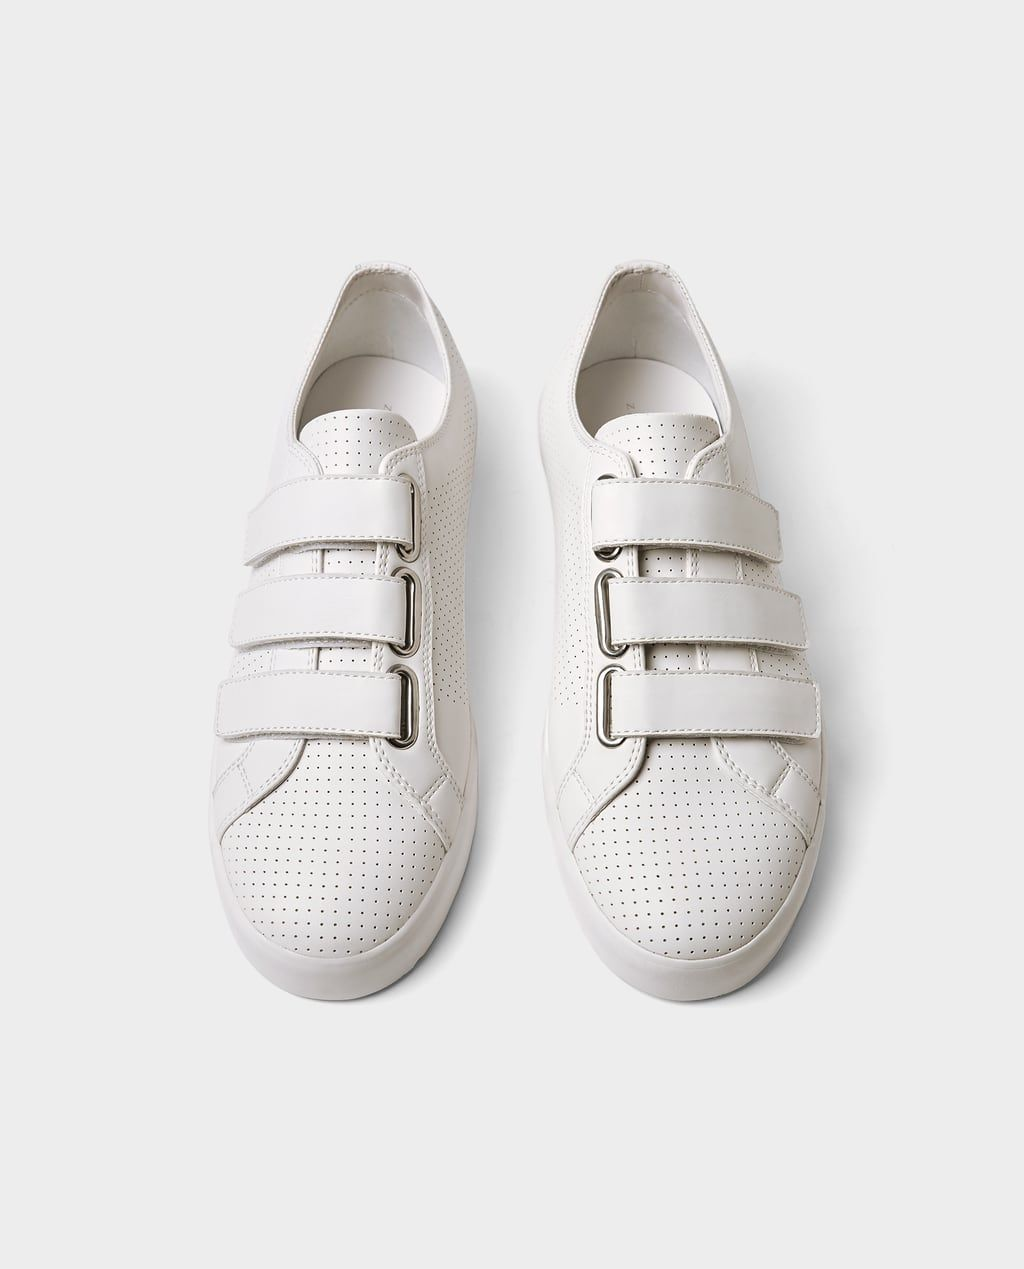 1931b3c8af4d Image 1 of MICRO-PERFORATED SNEAKERS WITH STRAPS from Zara Adidas Sneakers,  Zara,